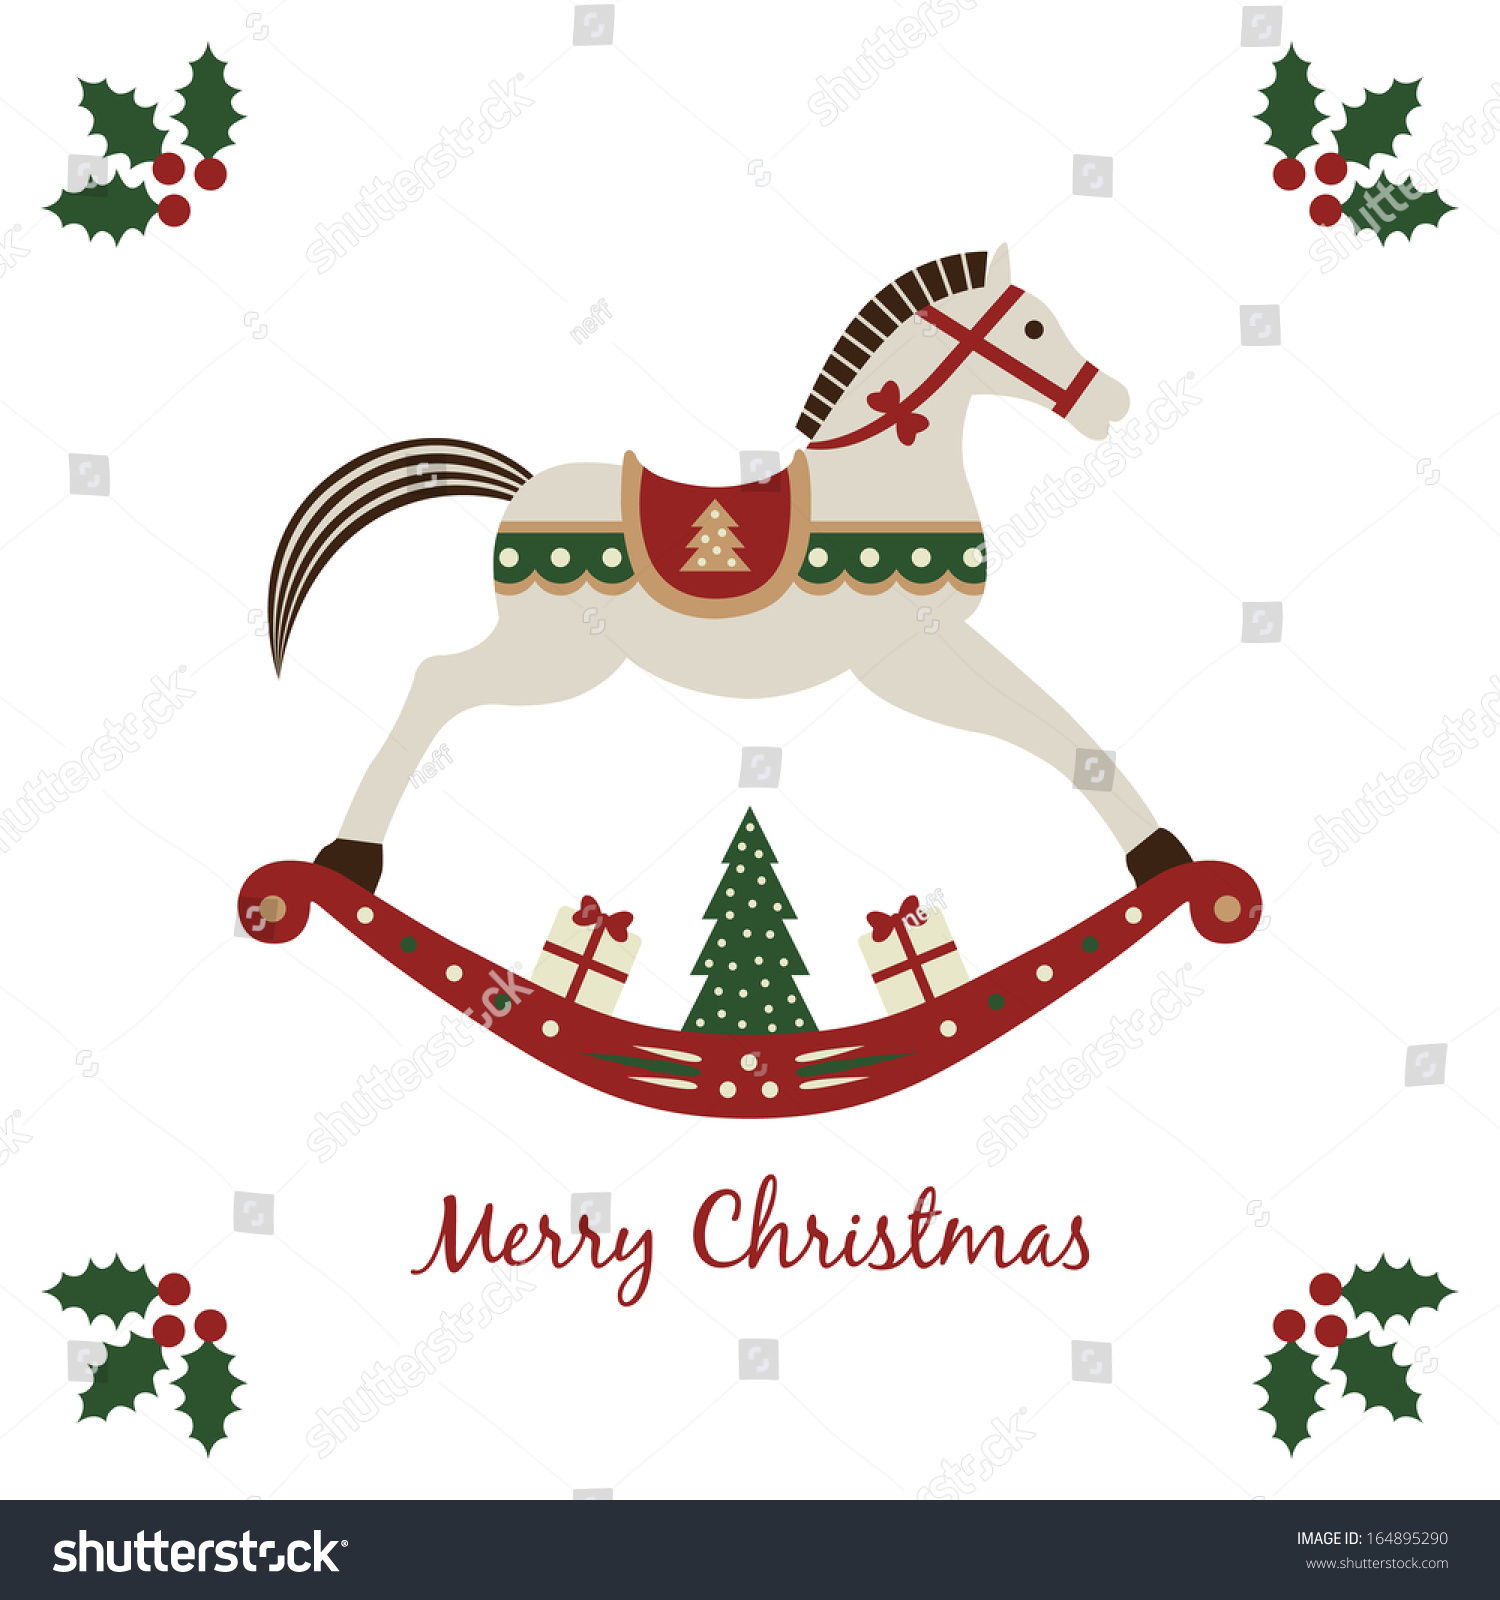 Merry Christmas Card Rocking Horse Symbol Stock Vector Royalty Free 164895290